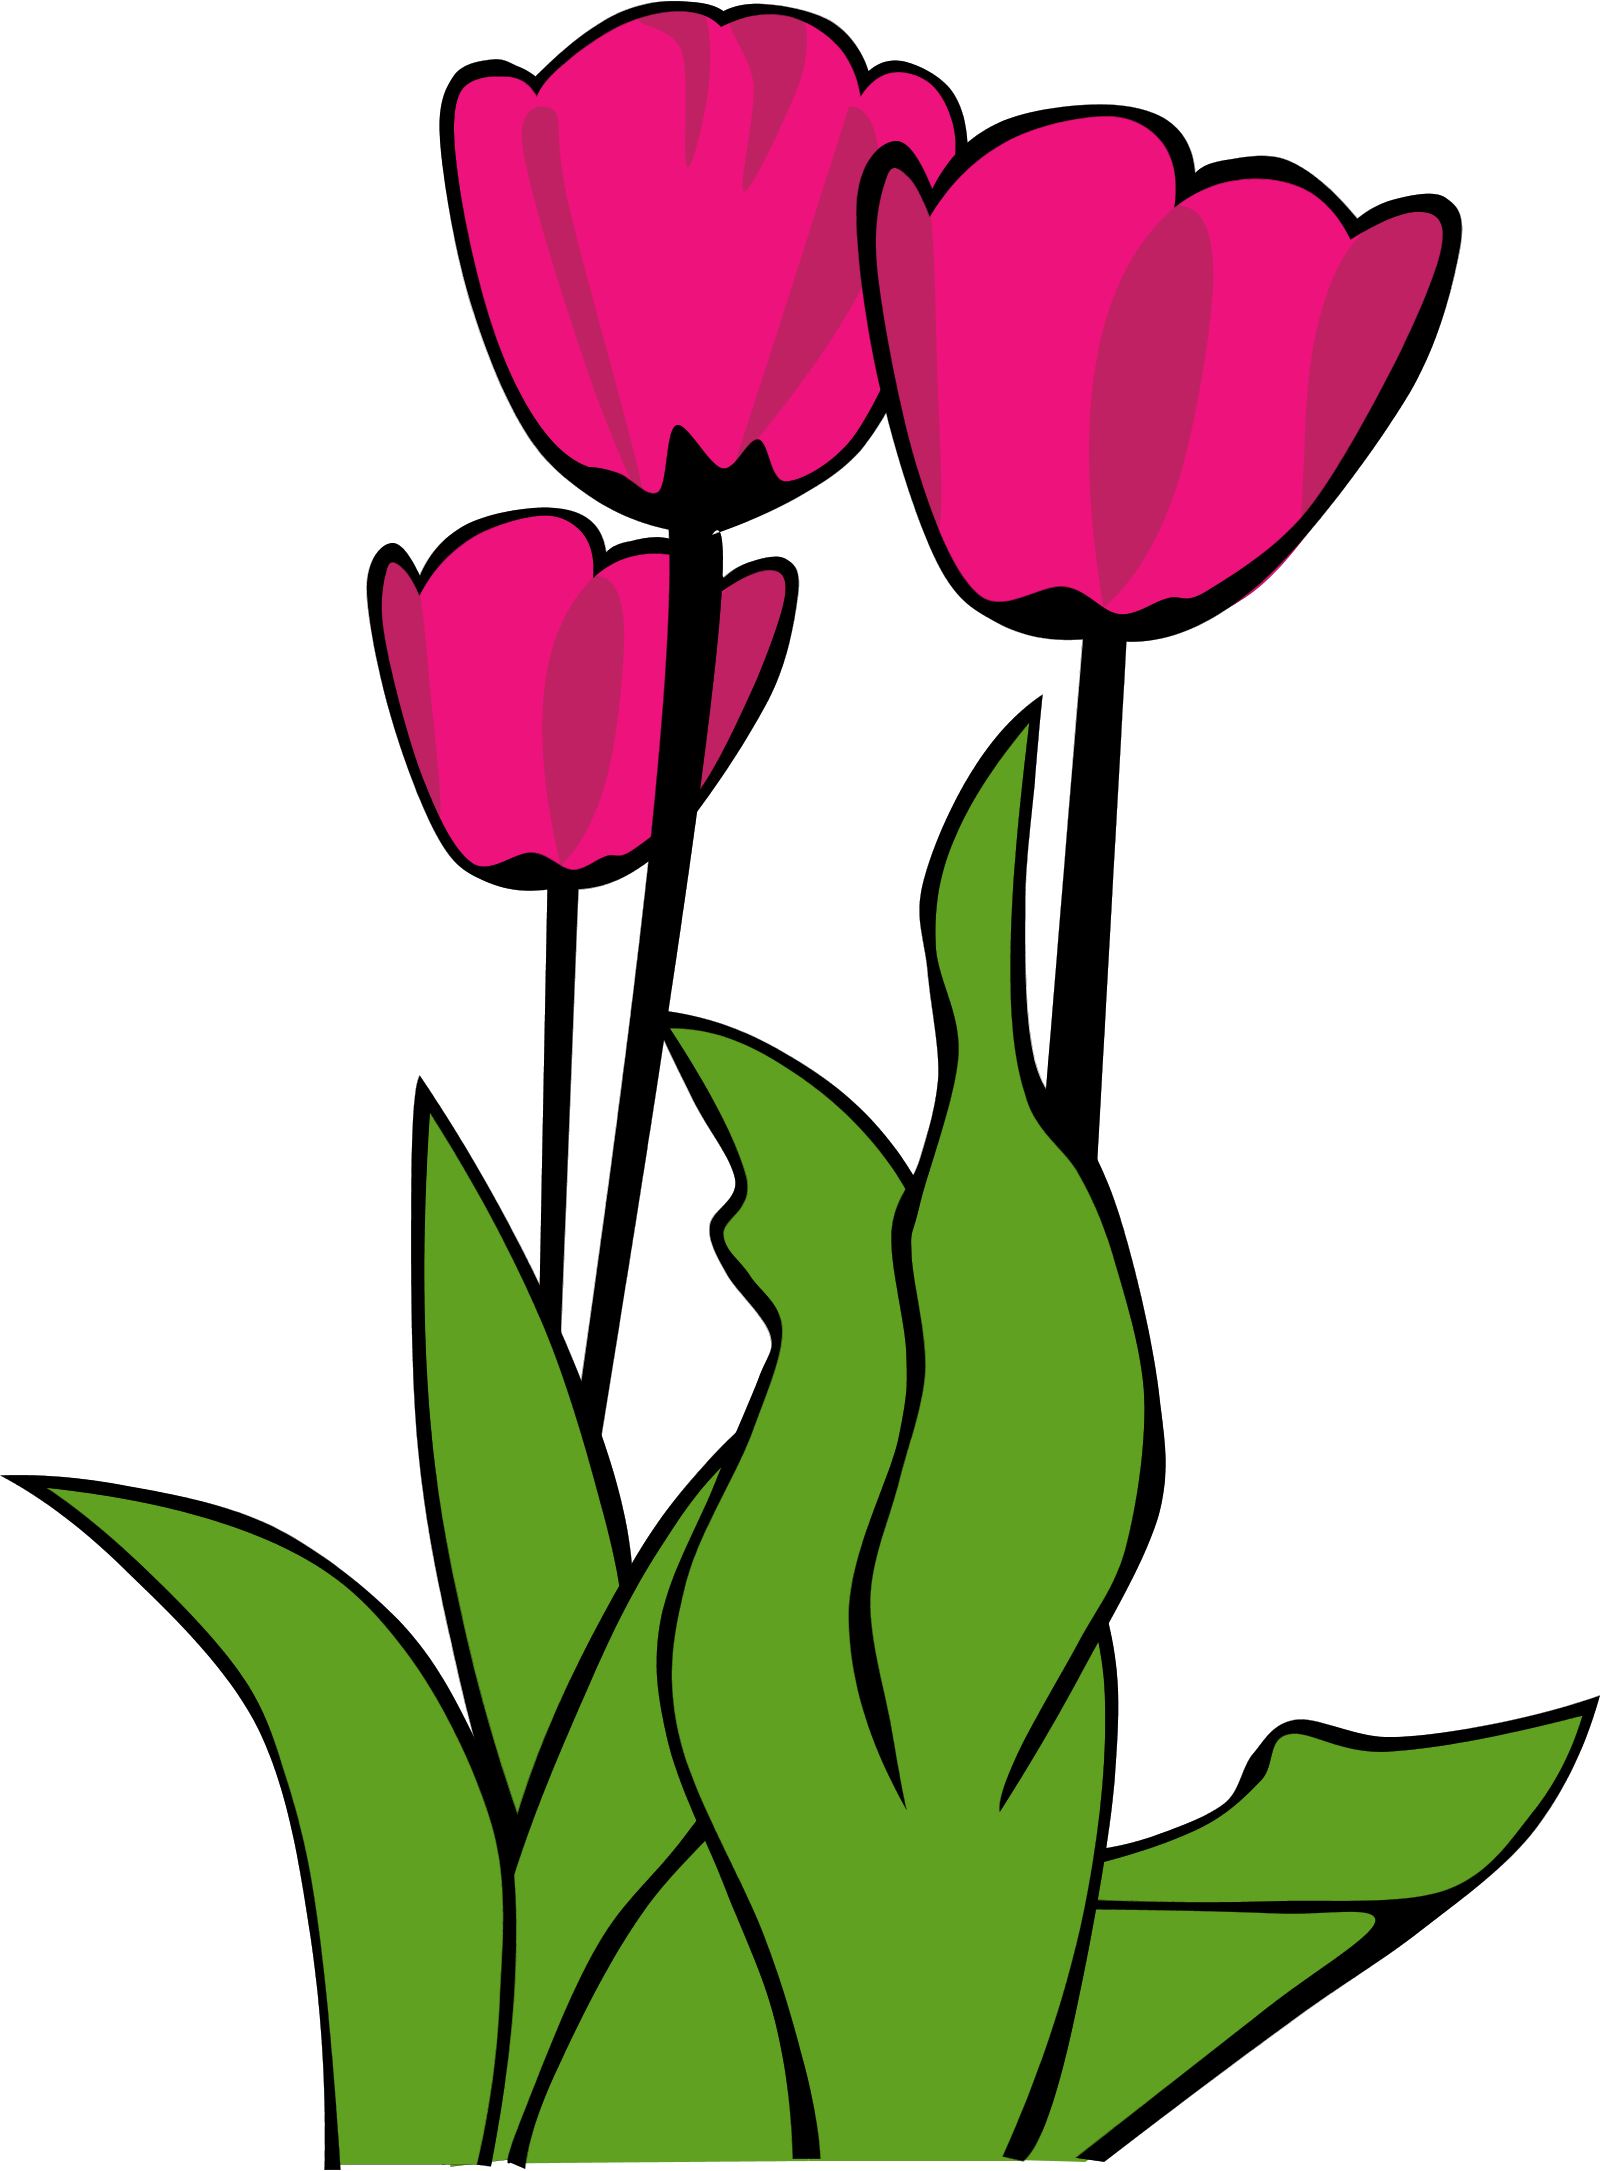 Clipart tulip flower clipart freeuse library Tulips Flowers Clipart clipart freeuse library